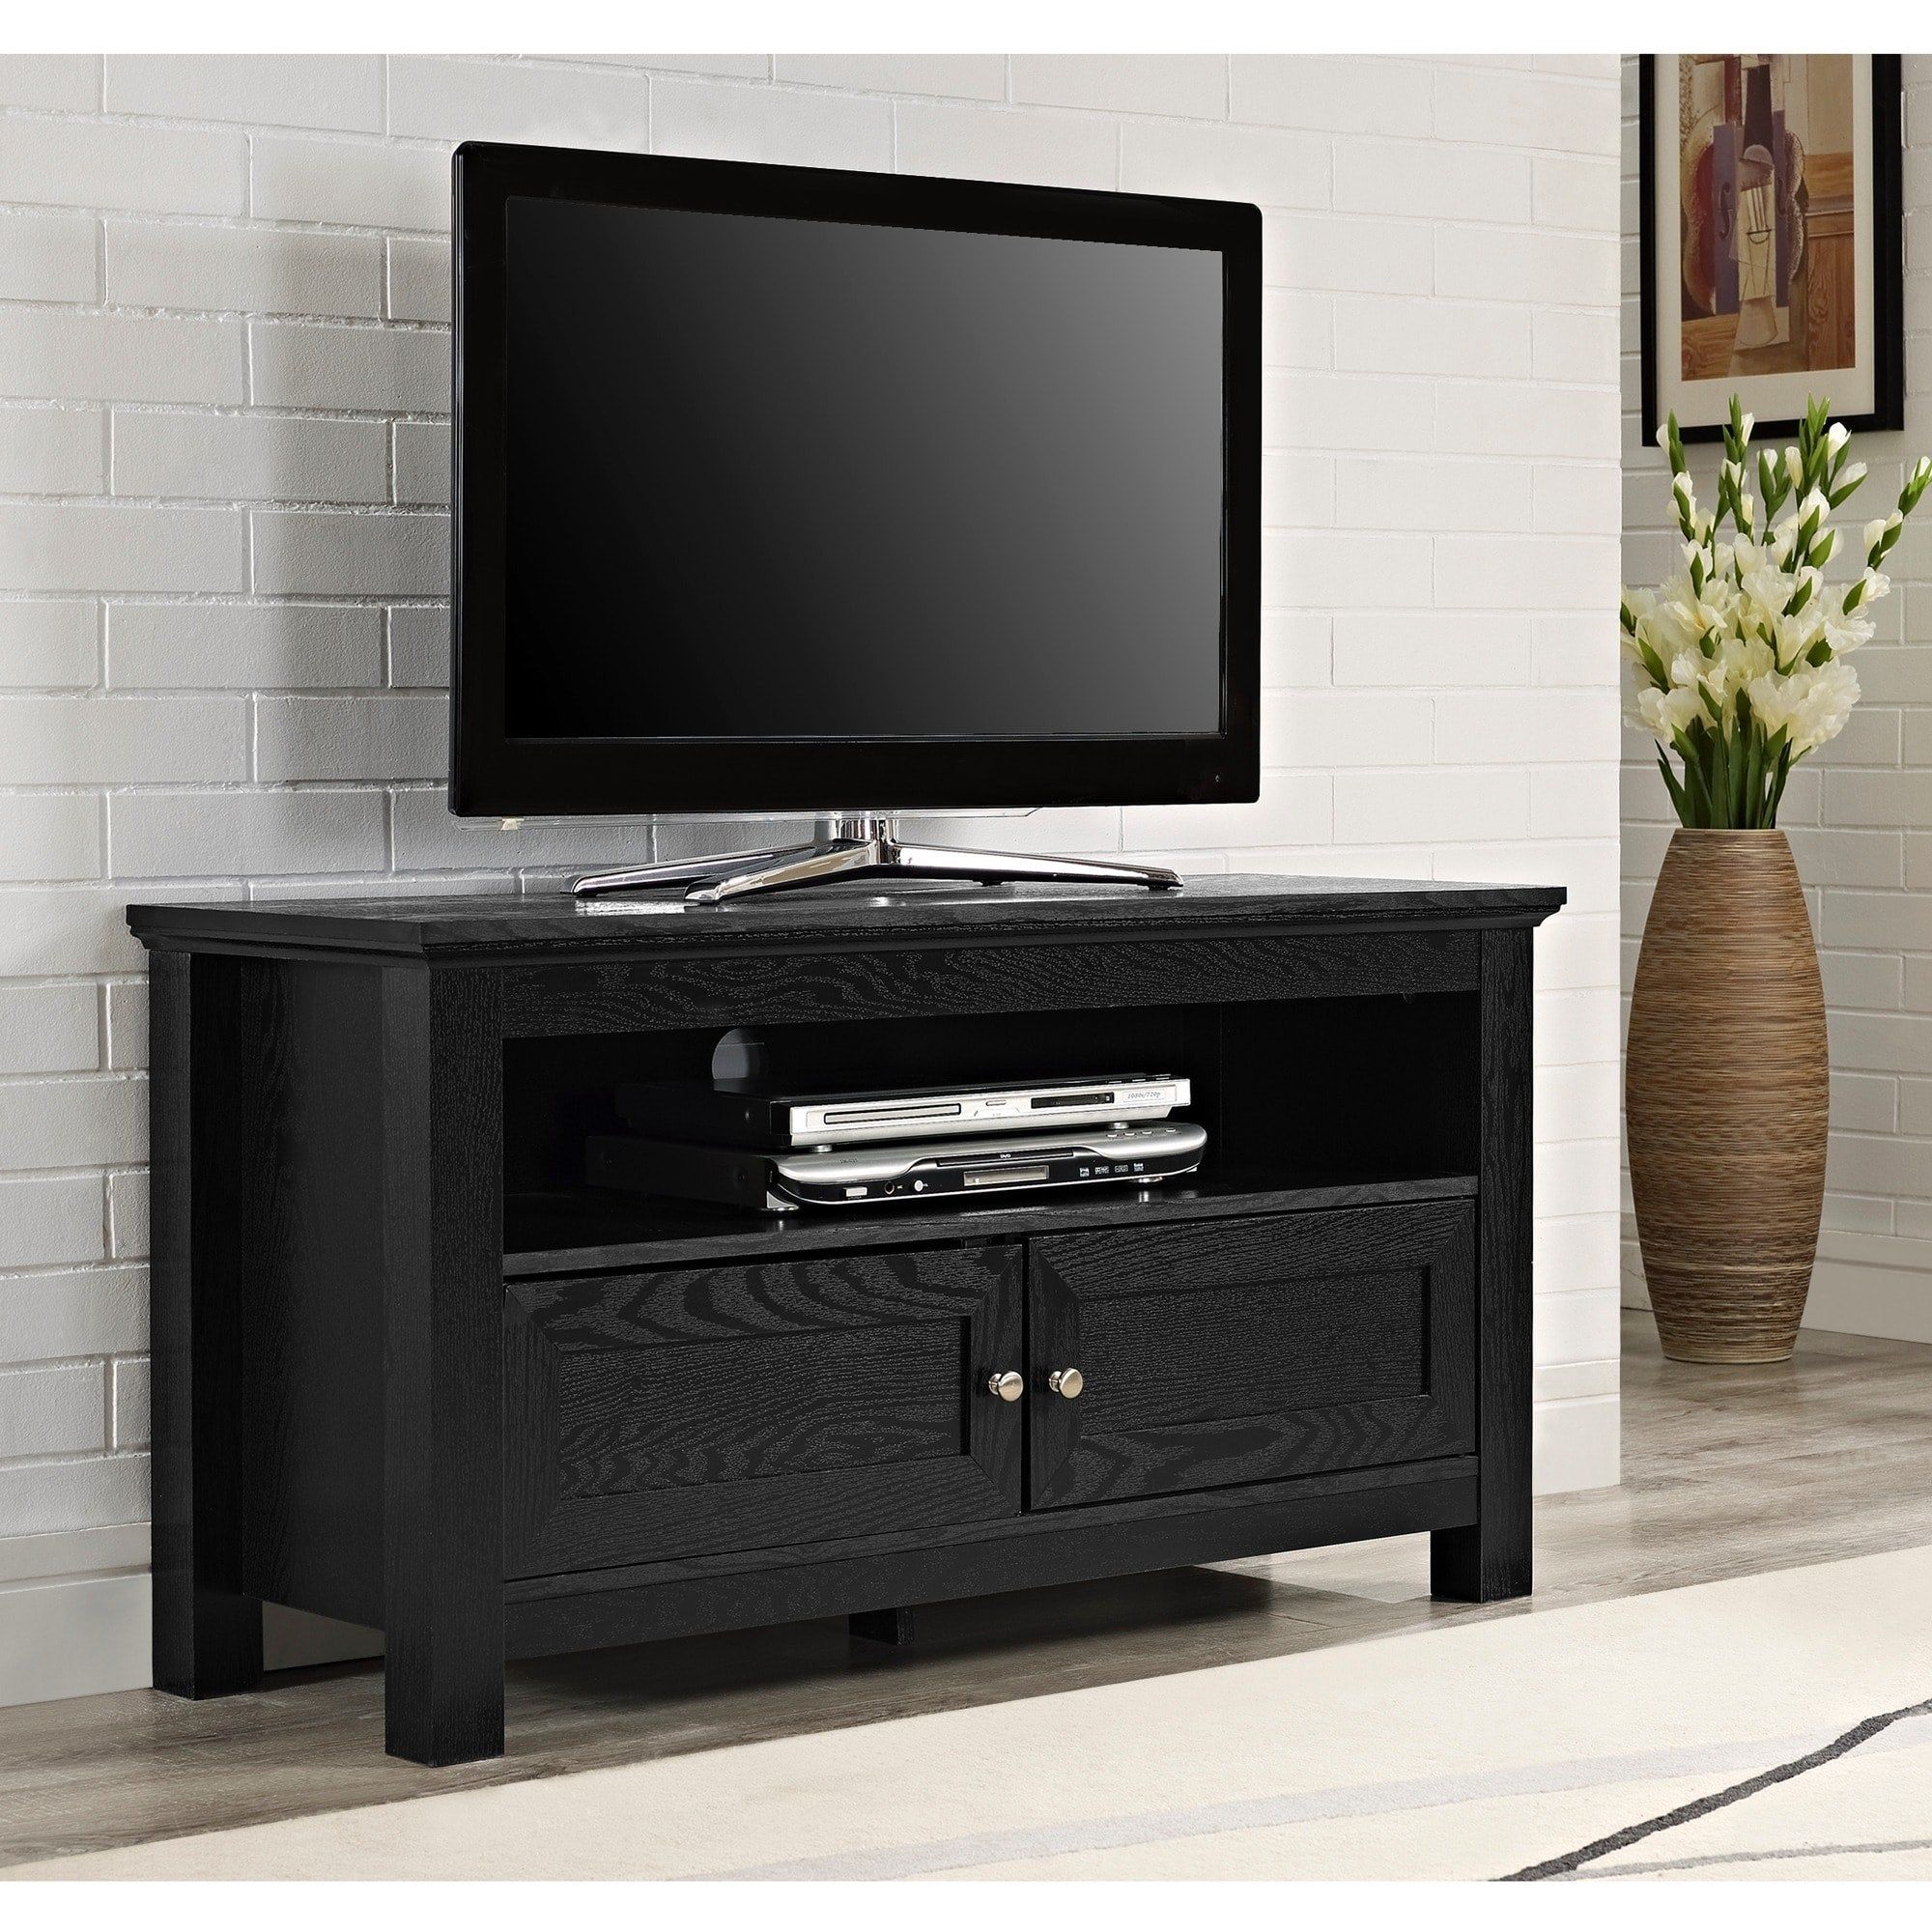 44-inch Black Wood TV Stand